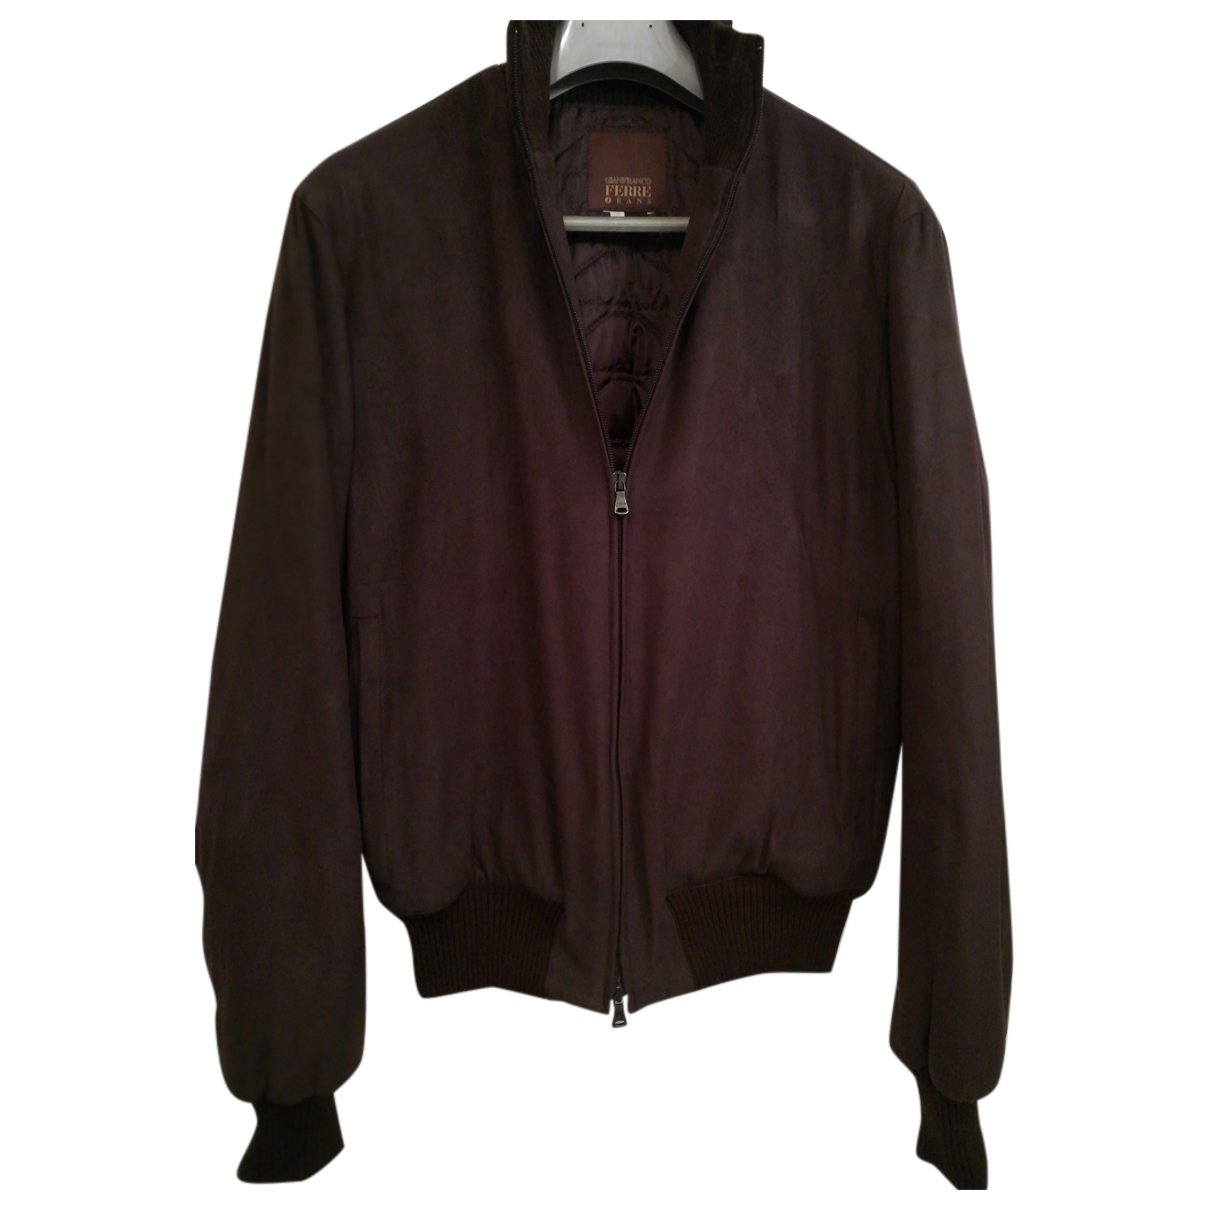 Gianfranco Ferré \N Burgundy Velvet jacket  for Men M International